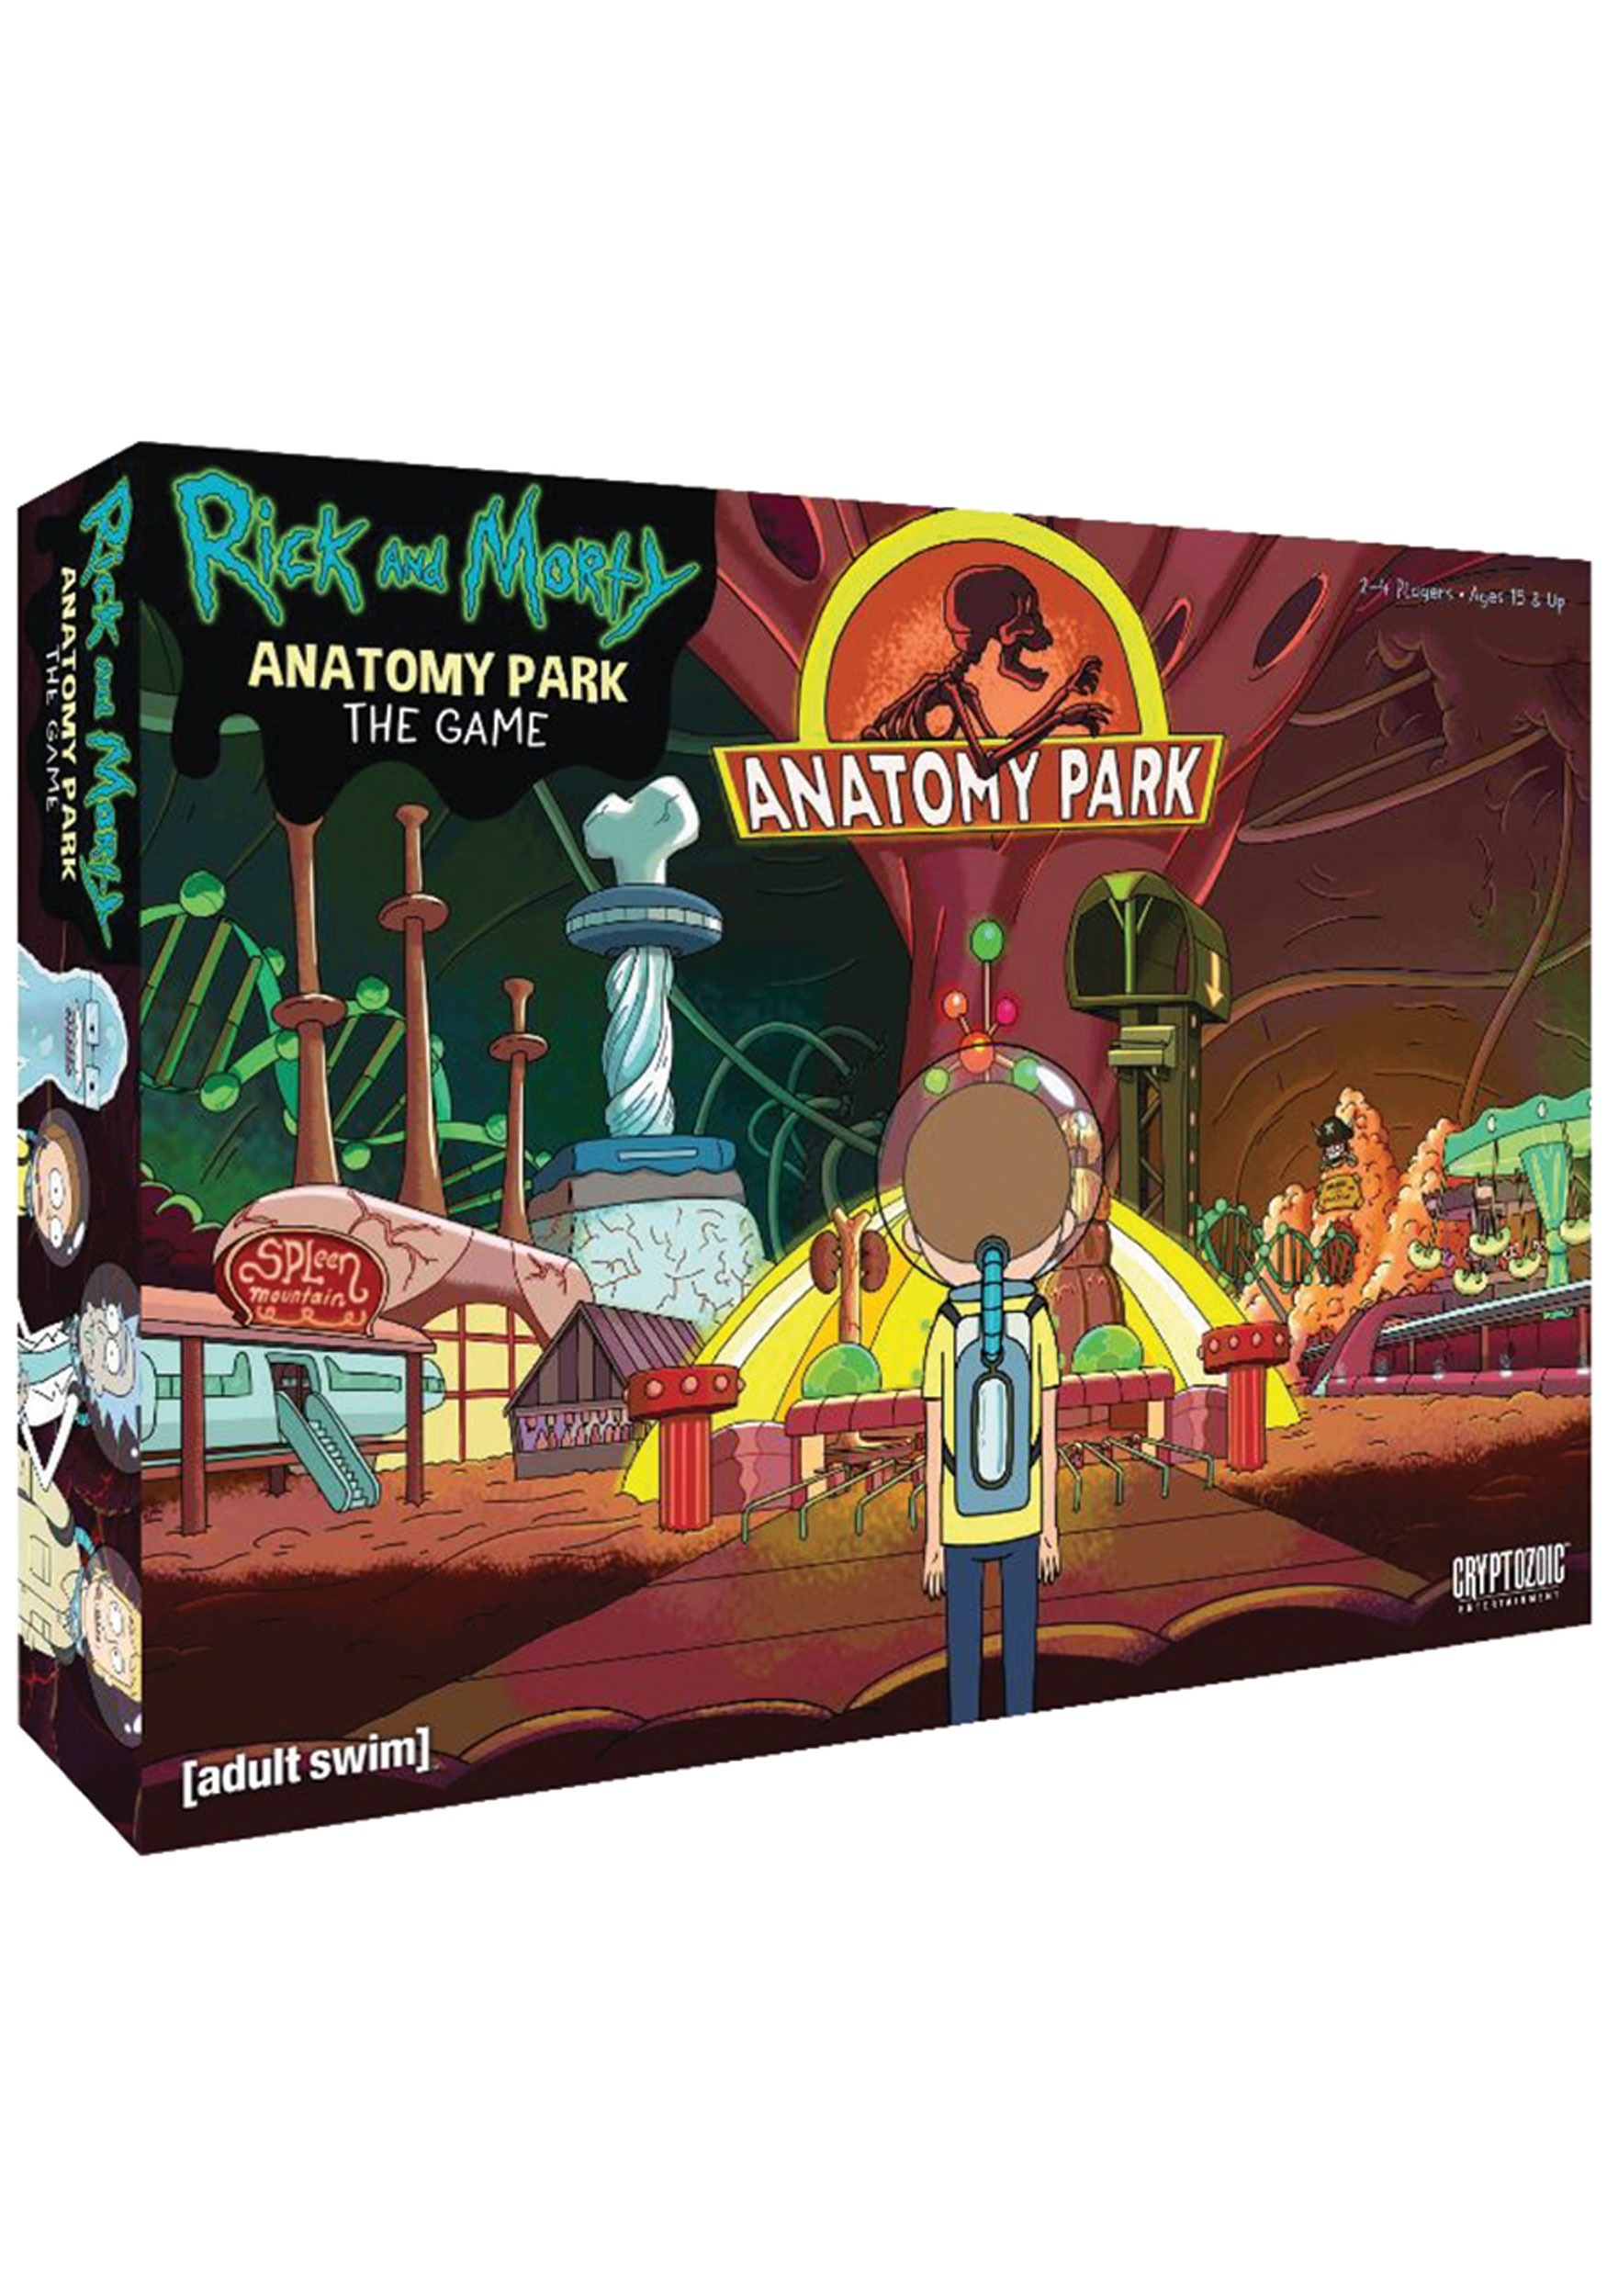 Rick and Morty: Anatomy Park- The Game